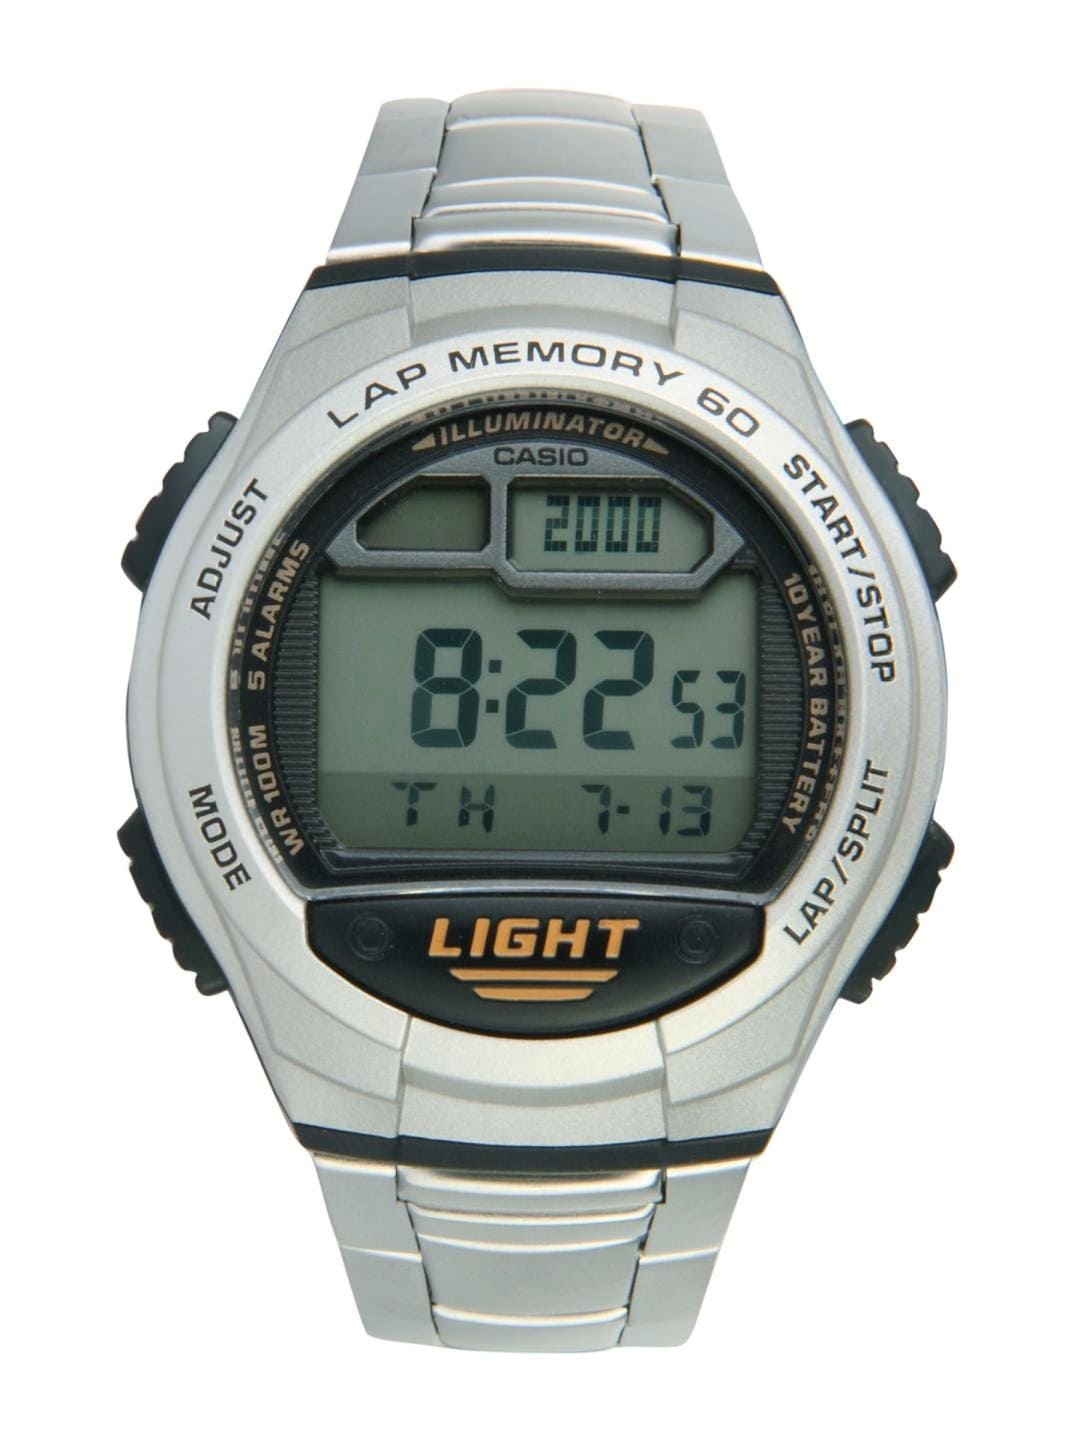 Casio Men Digital Watches Price List In India 1 December 2018 G Shock 7710 1dr Steel Toned Watch D091